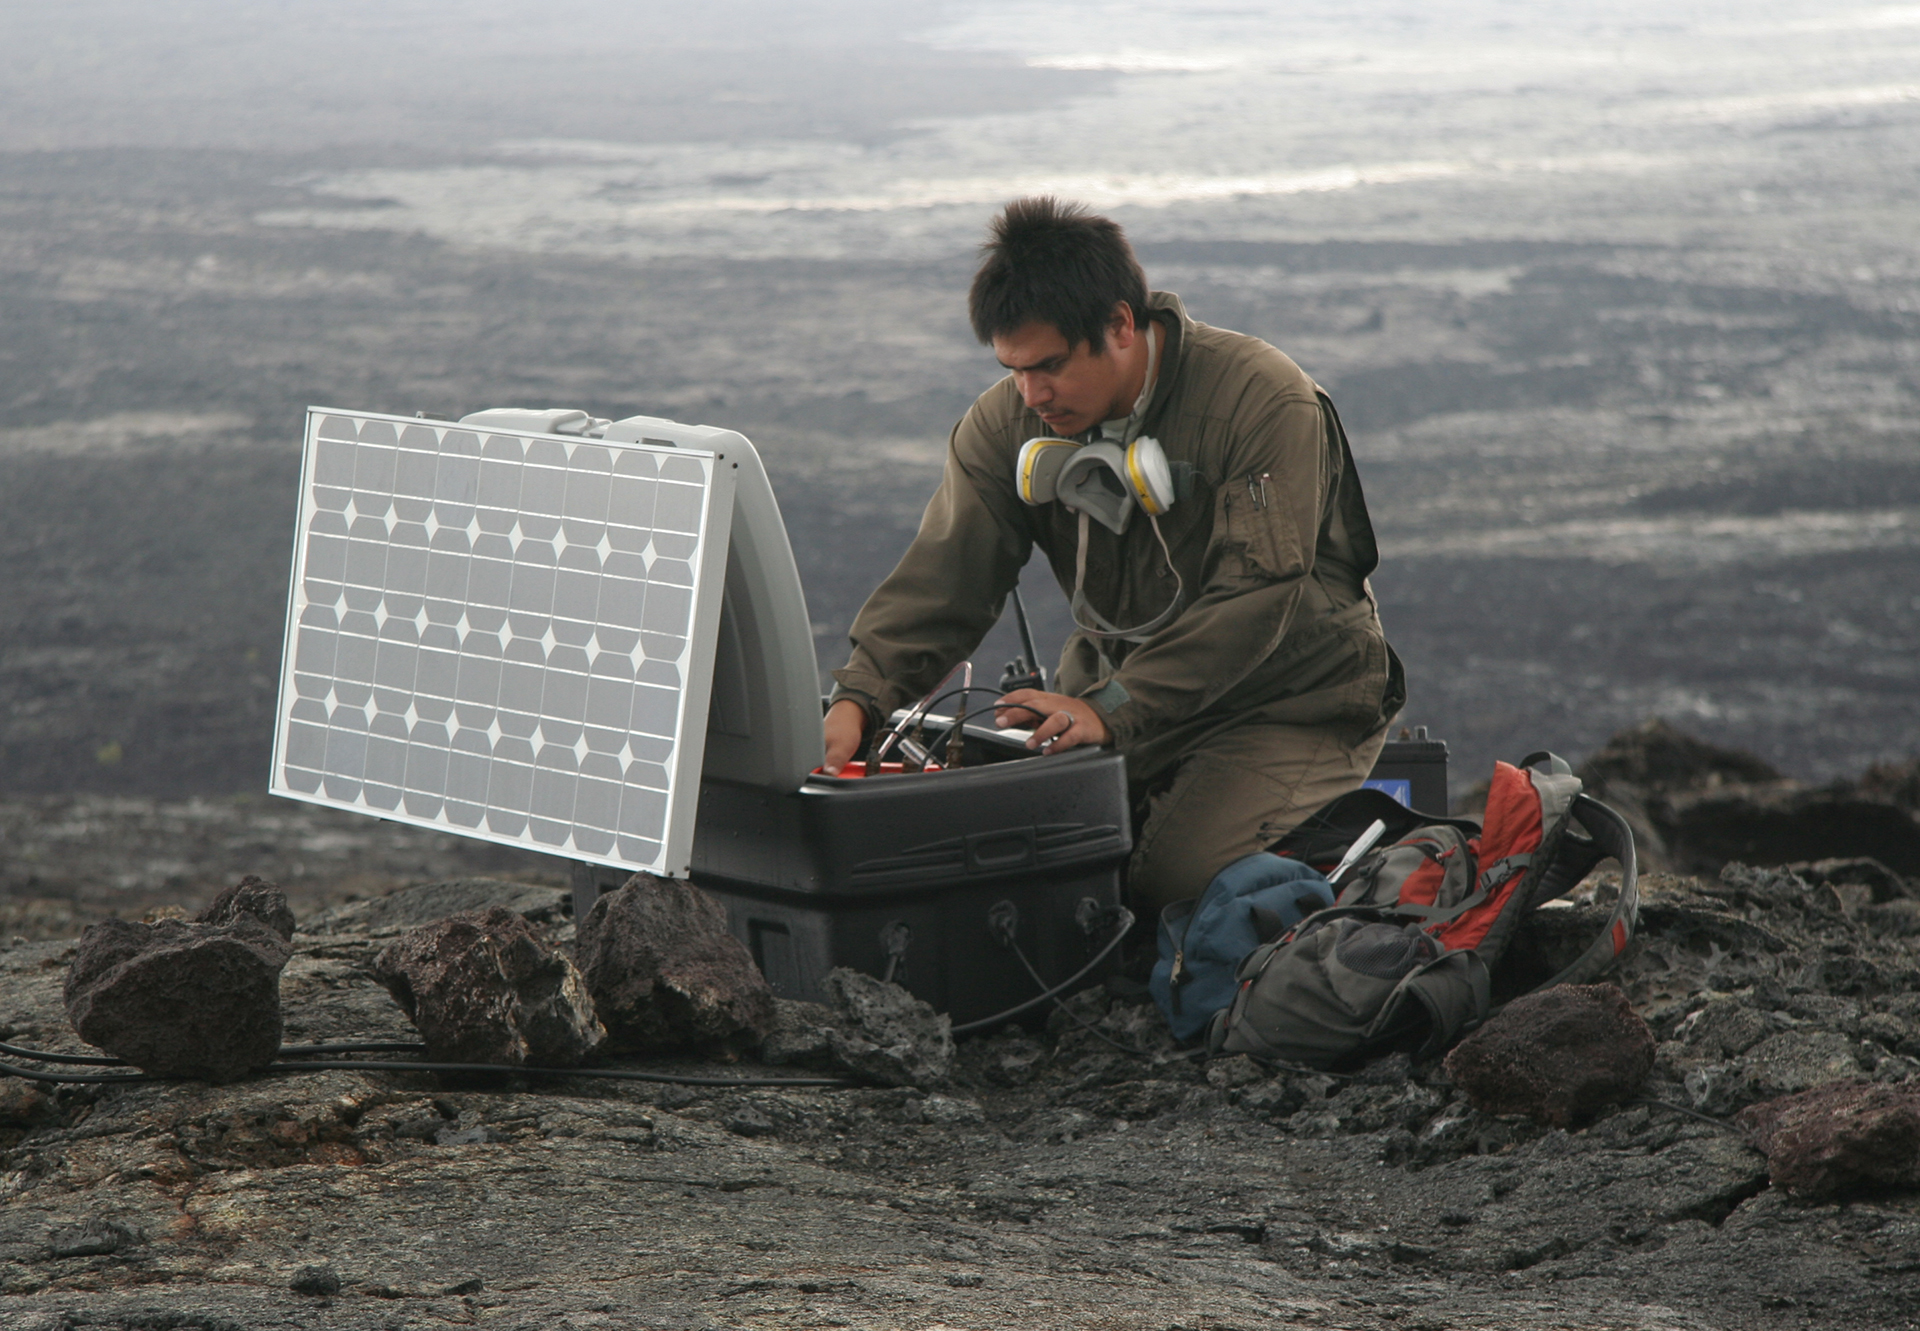 Kevan Kamibayashi testing equipment in a lava field.